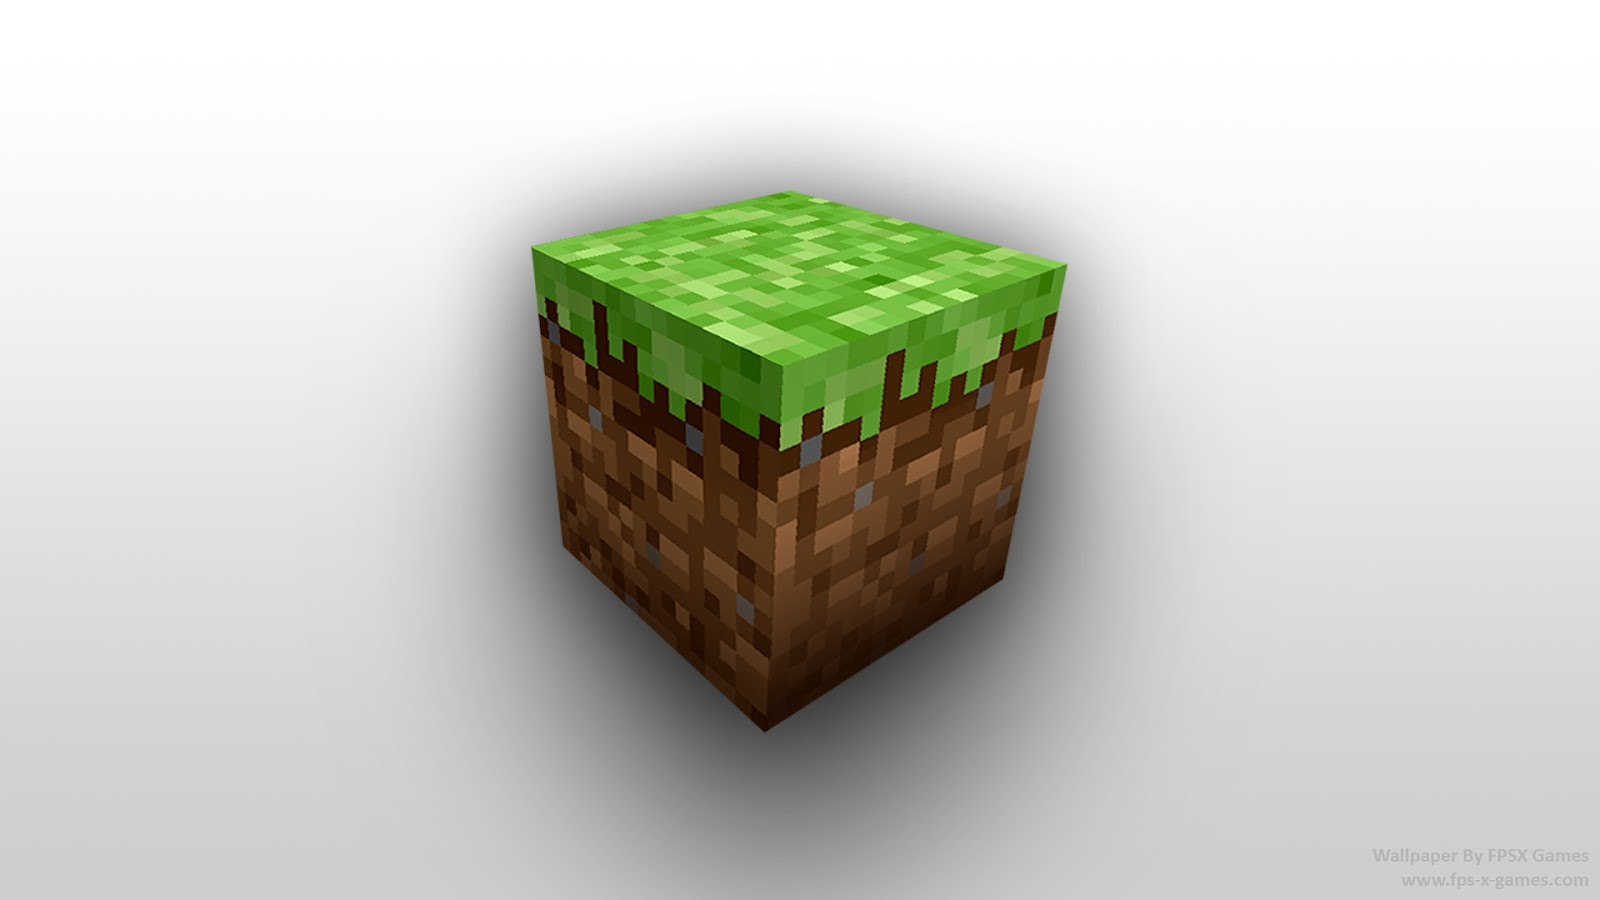 Wallpapers de minecraft en HD